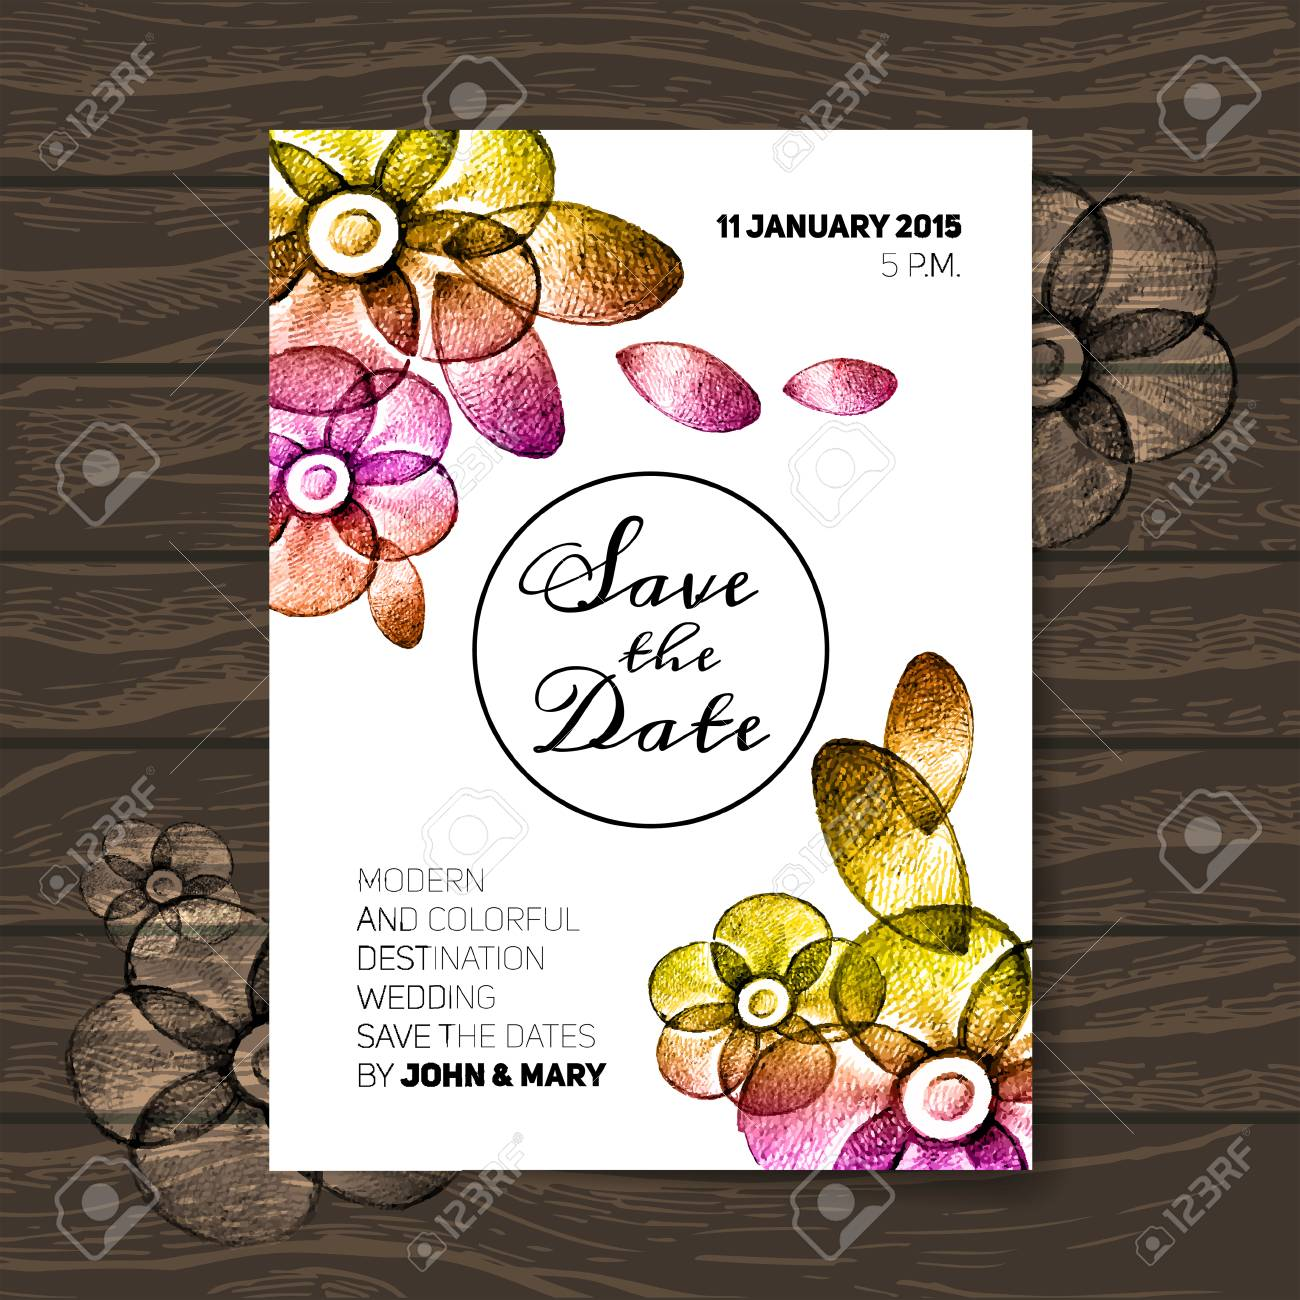 vintage wedding invitation with flowers save the date design